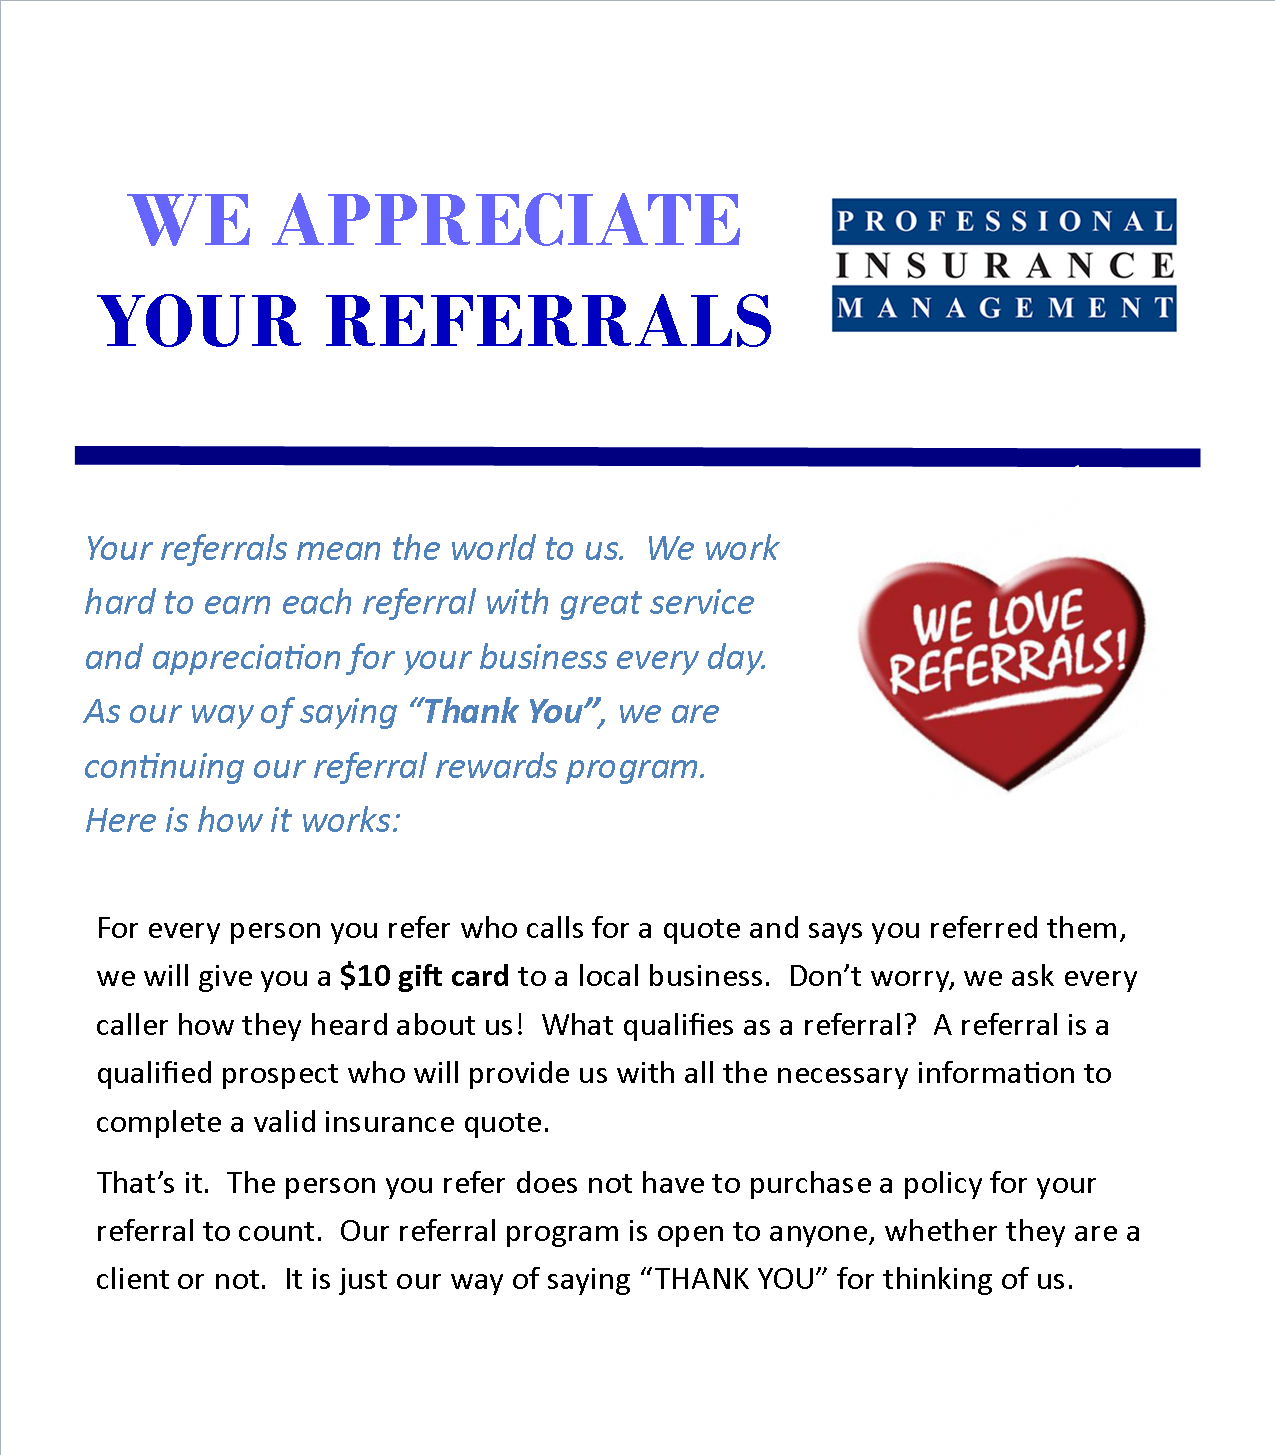 Business card referral quotes image collections card for Referral quotes for business cards